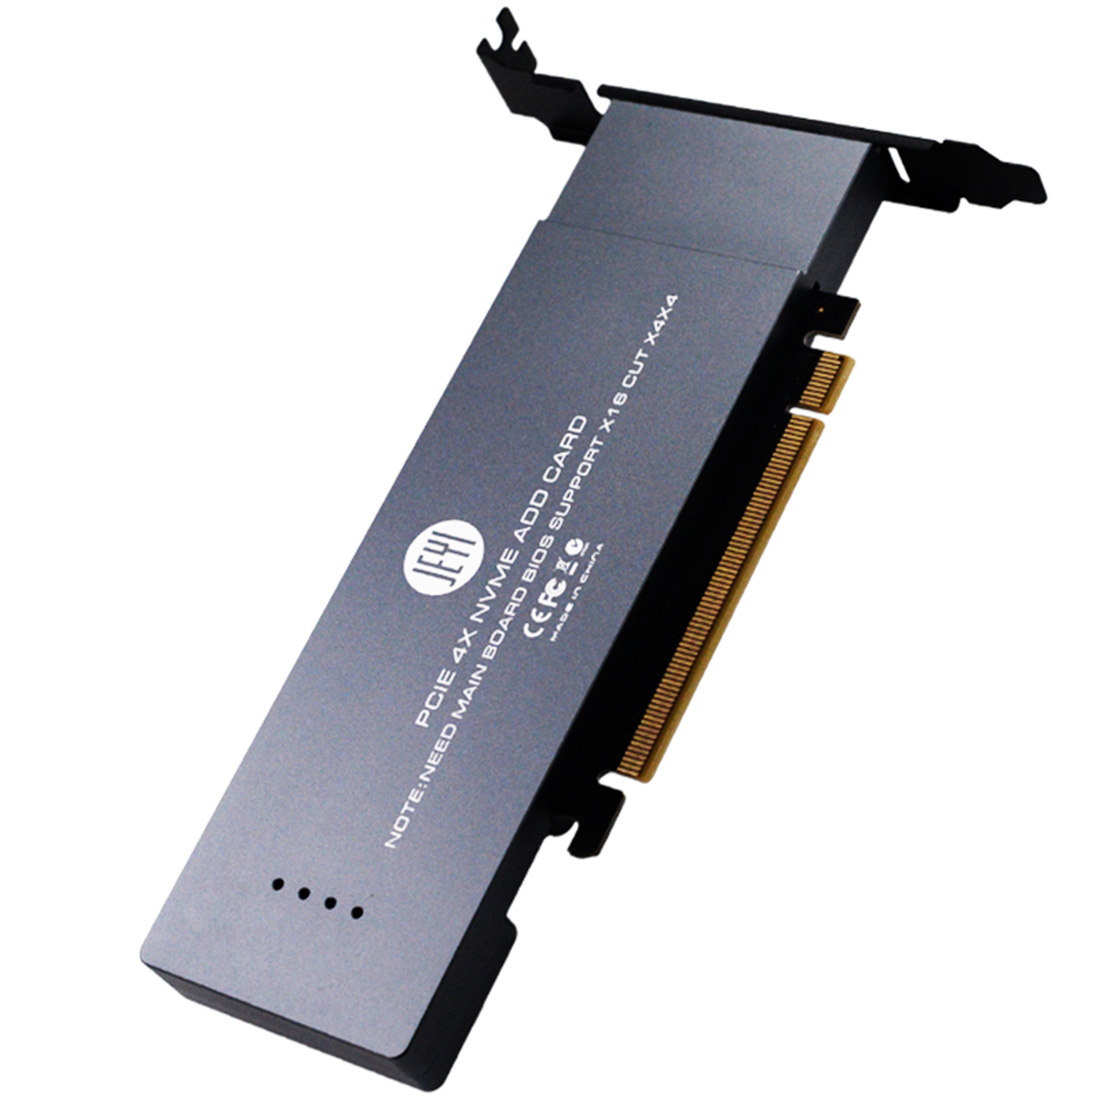 JEYI IHyper-Pro PCI-E M.2 X16 To 4X NVME PCIE 3.0 Disk GEN3 RAID Card PCI-E NVMEx4 Array Expansion Card Support 2U Chassis PC